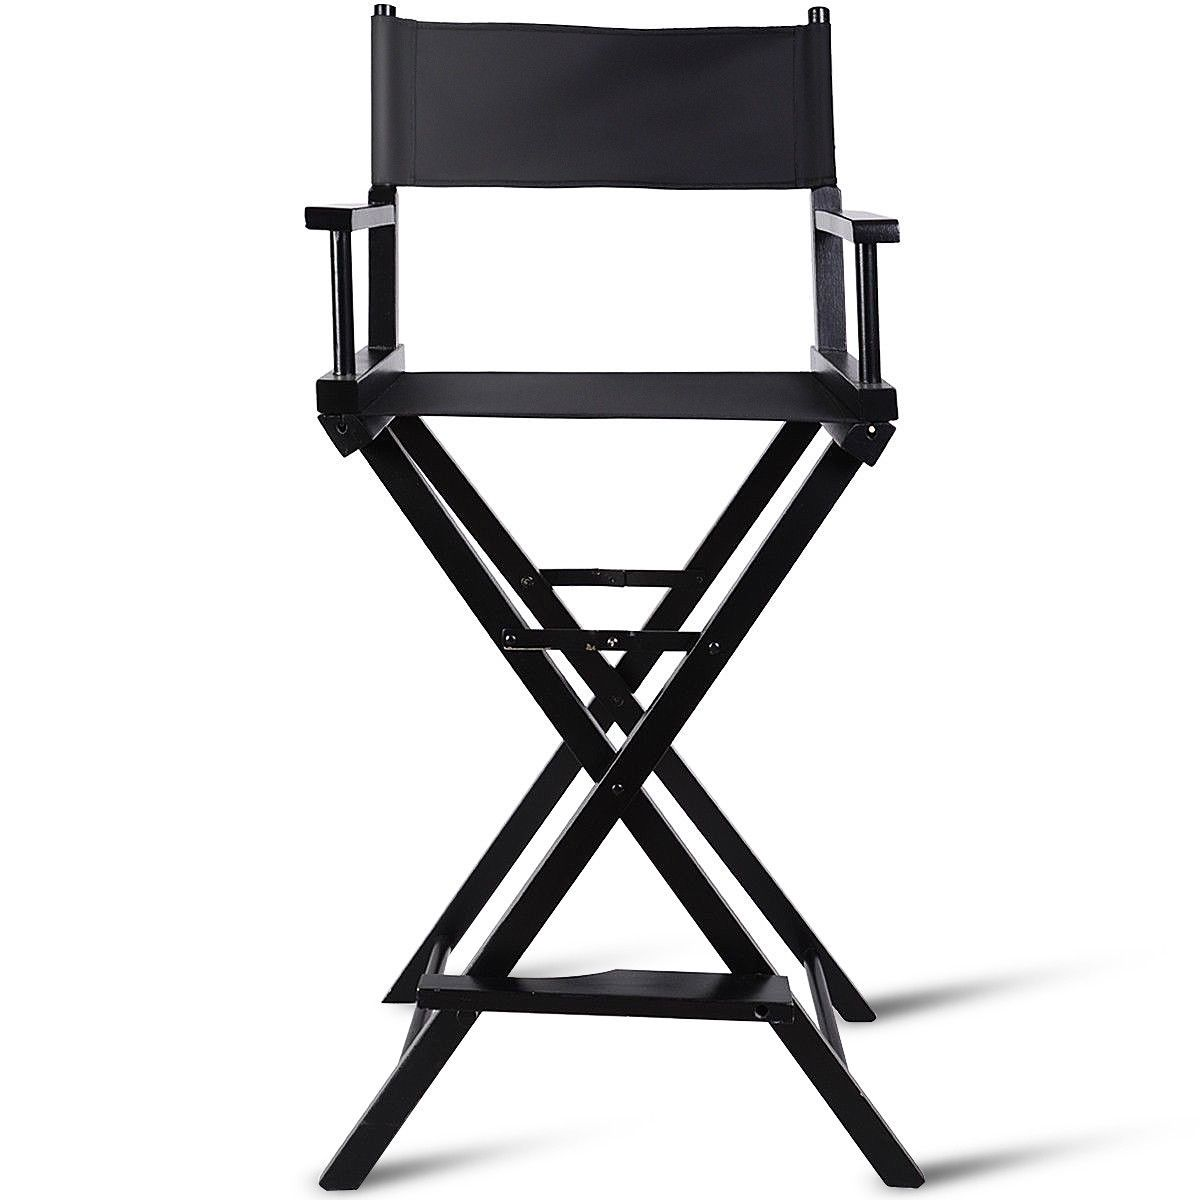 Professional Makeup Artist Foldable Chair In 2020 Foldable Chairs Wood Chair Makeup Artist Chair